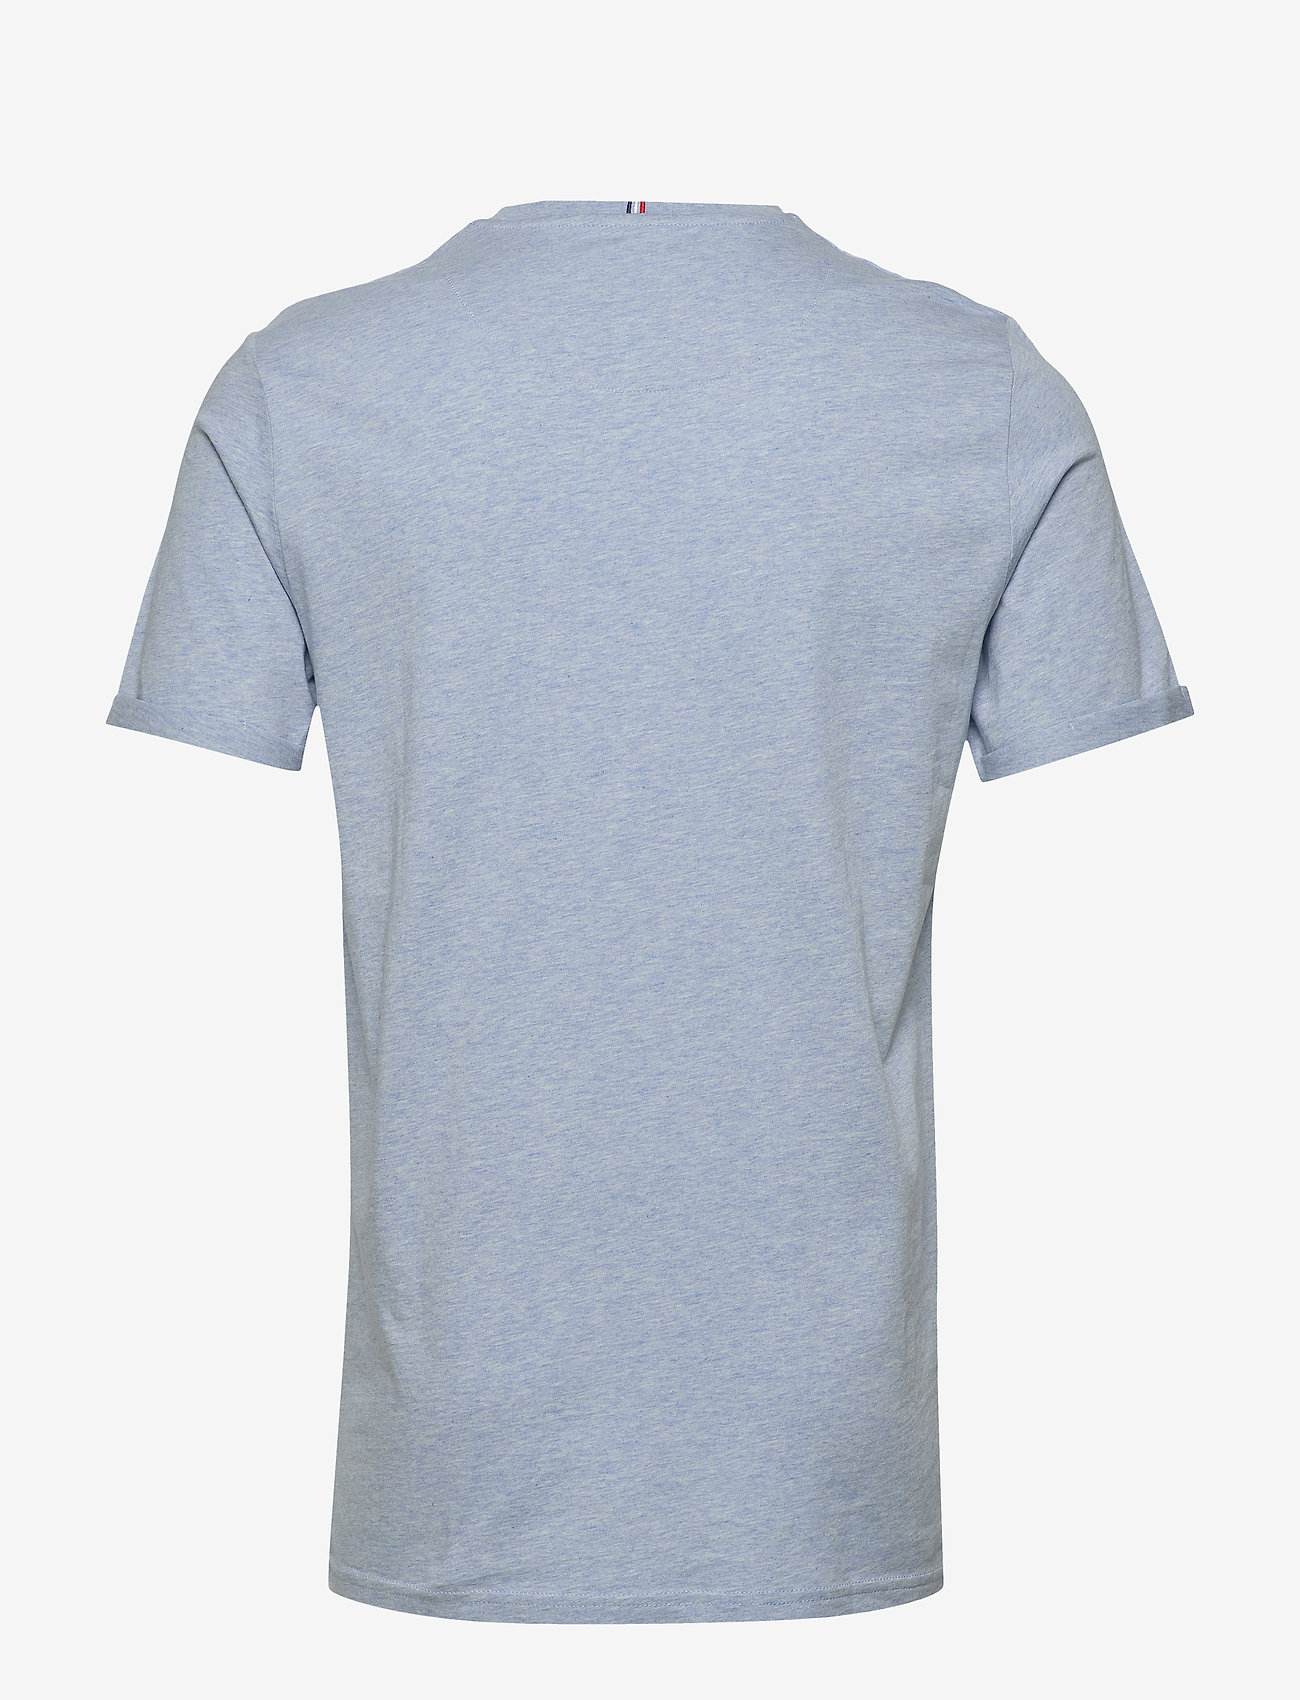 Les Deux Nørregaard T-Shirt - T-skjorter LIGHT BLUE MELANGE/ORANGE - Menn Klær